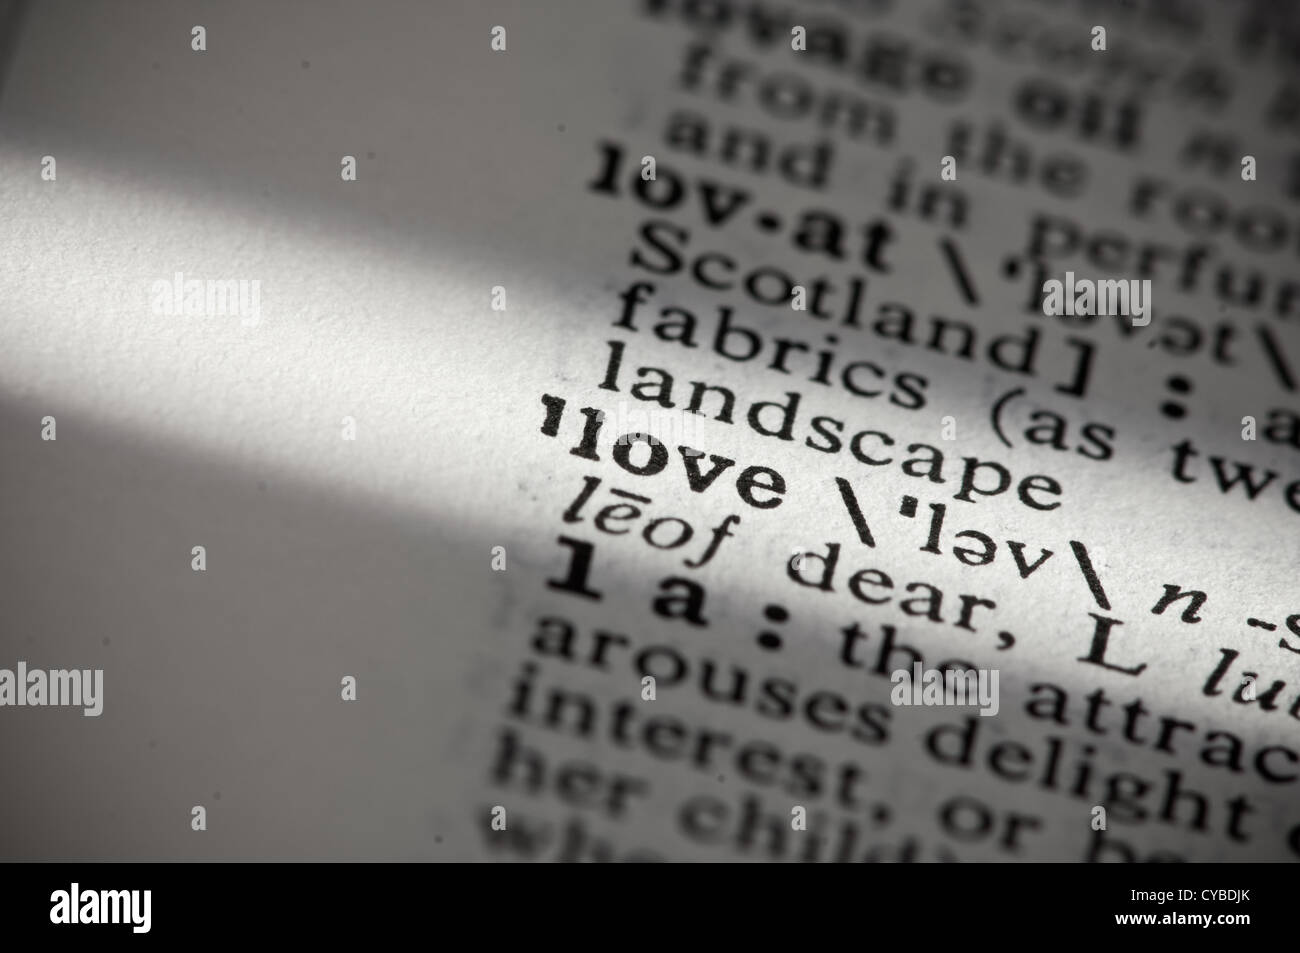 Definition Love Word In English Stock Photos & Definition